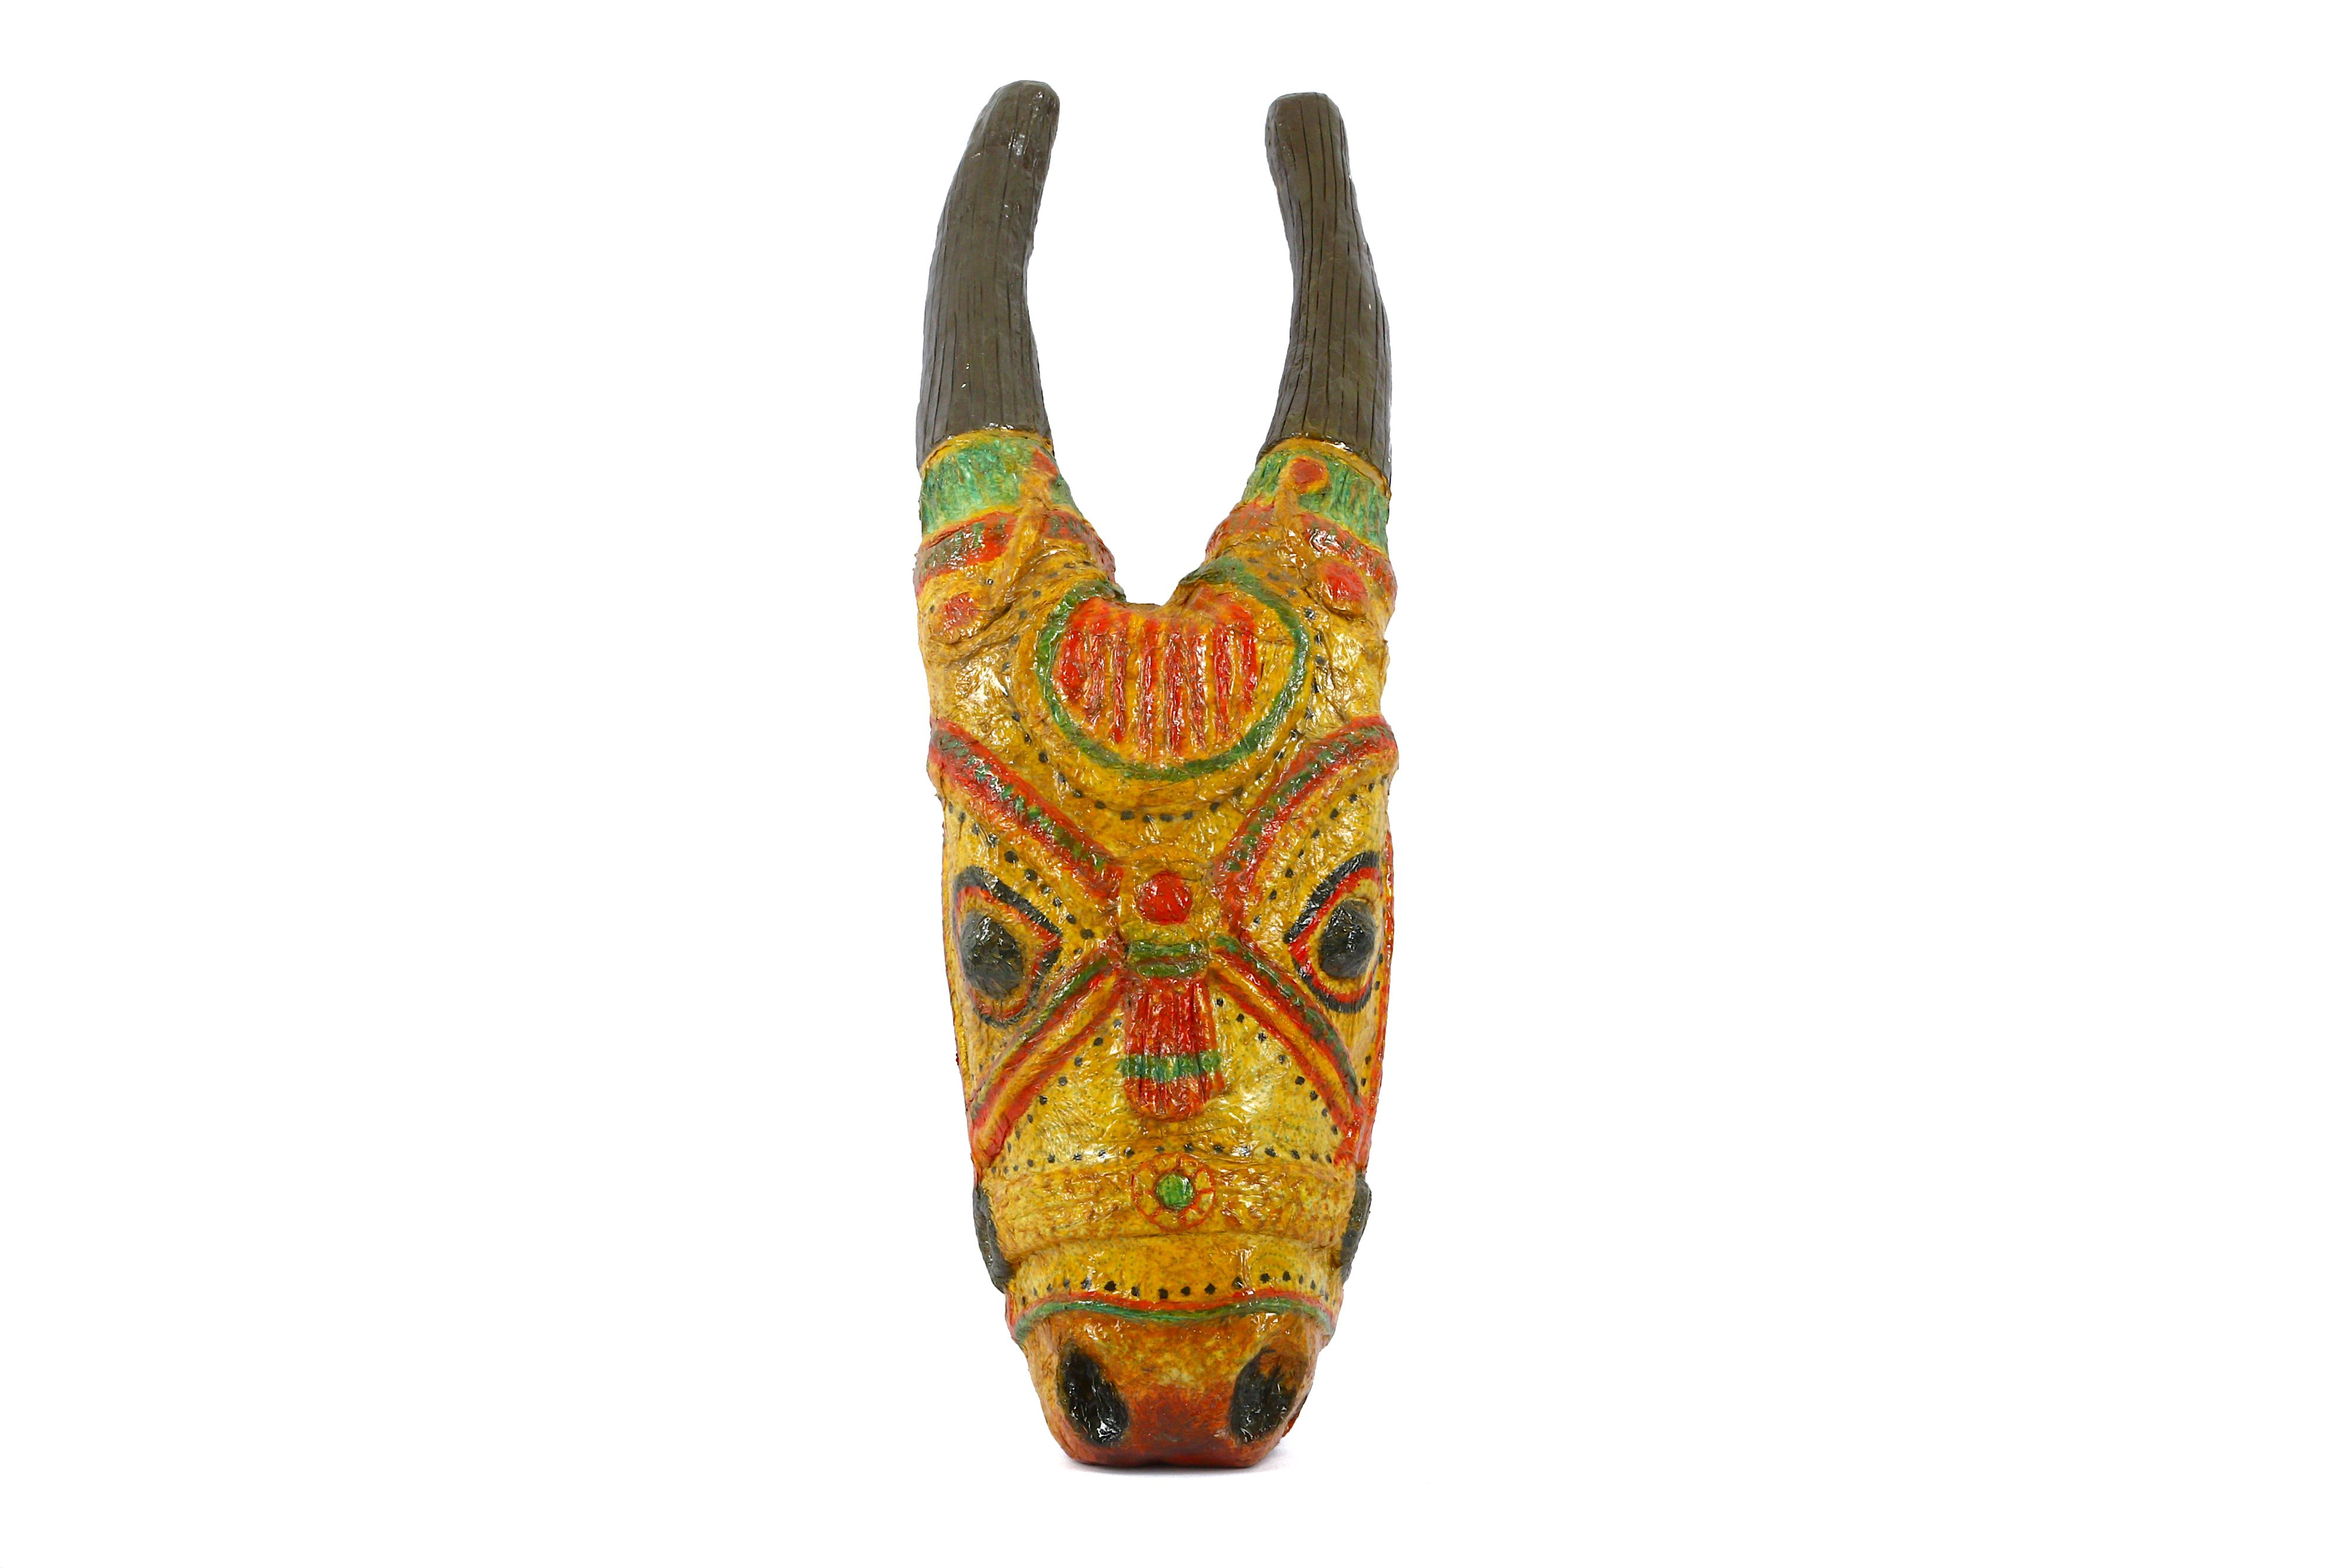 A WALL HANGING DEPICTING THE HINDU GOD NANDI (SHIVA) IN THE FORM OF A BULL